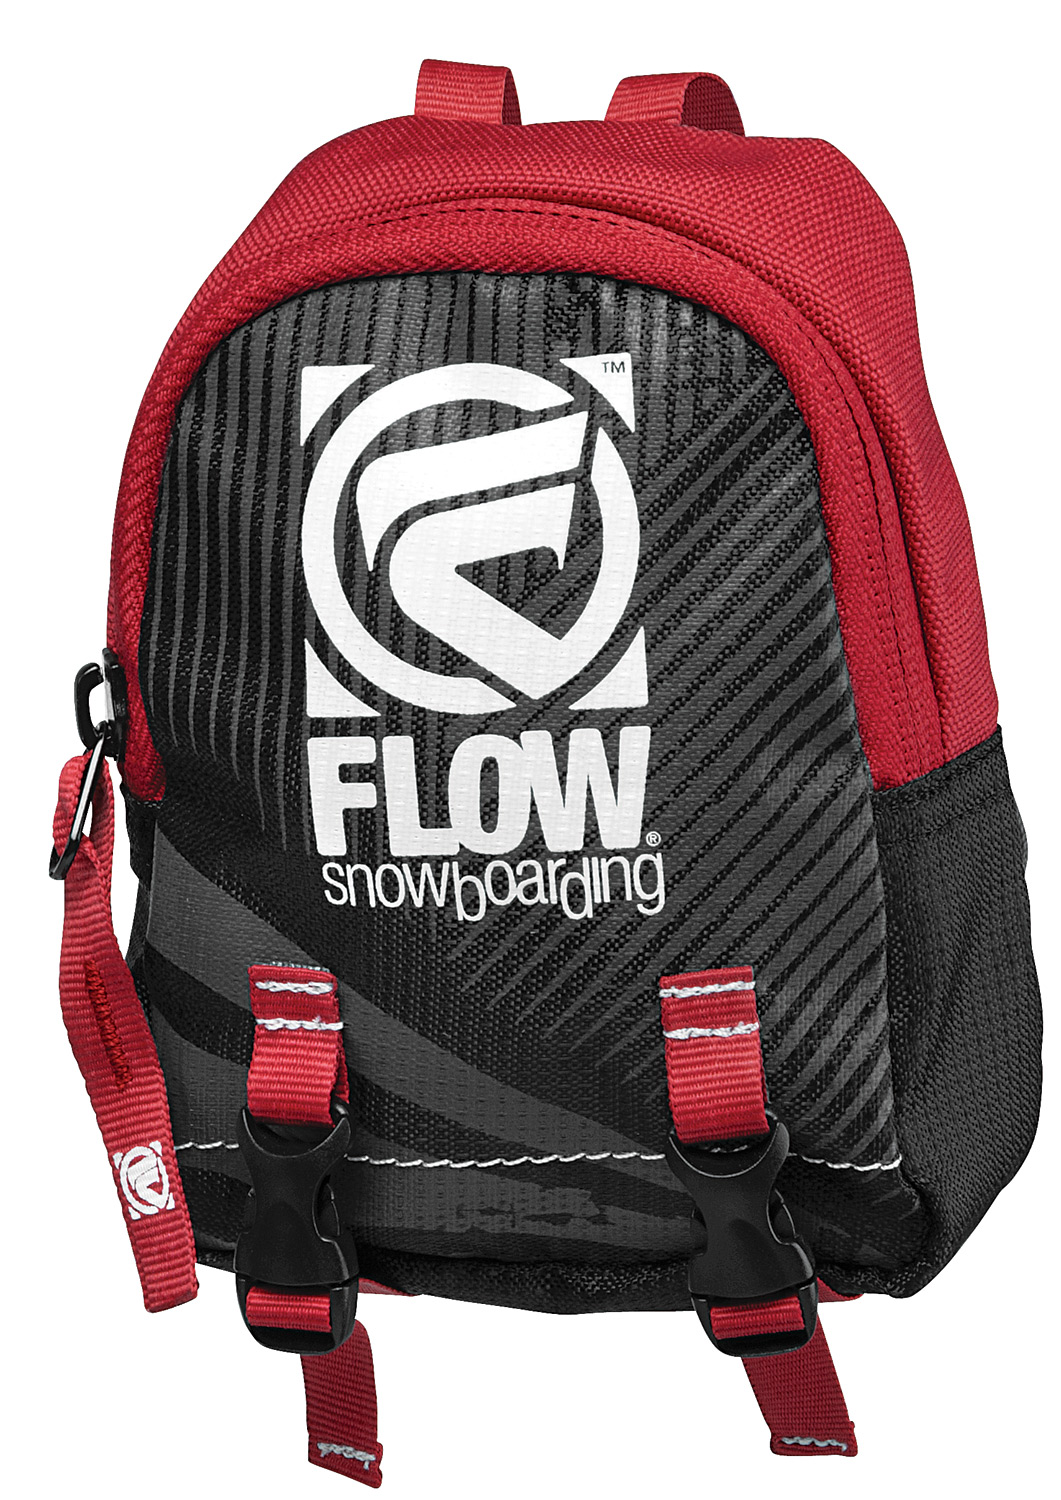 "Snowboard Key Features of the Flow Strap Stash Hi-Back Pack: Mini backpack for your snowboard binding's hi-back! 450D Polyester Release buckle straps Zippered ""Stash"" pocket - $8.99"